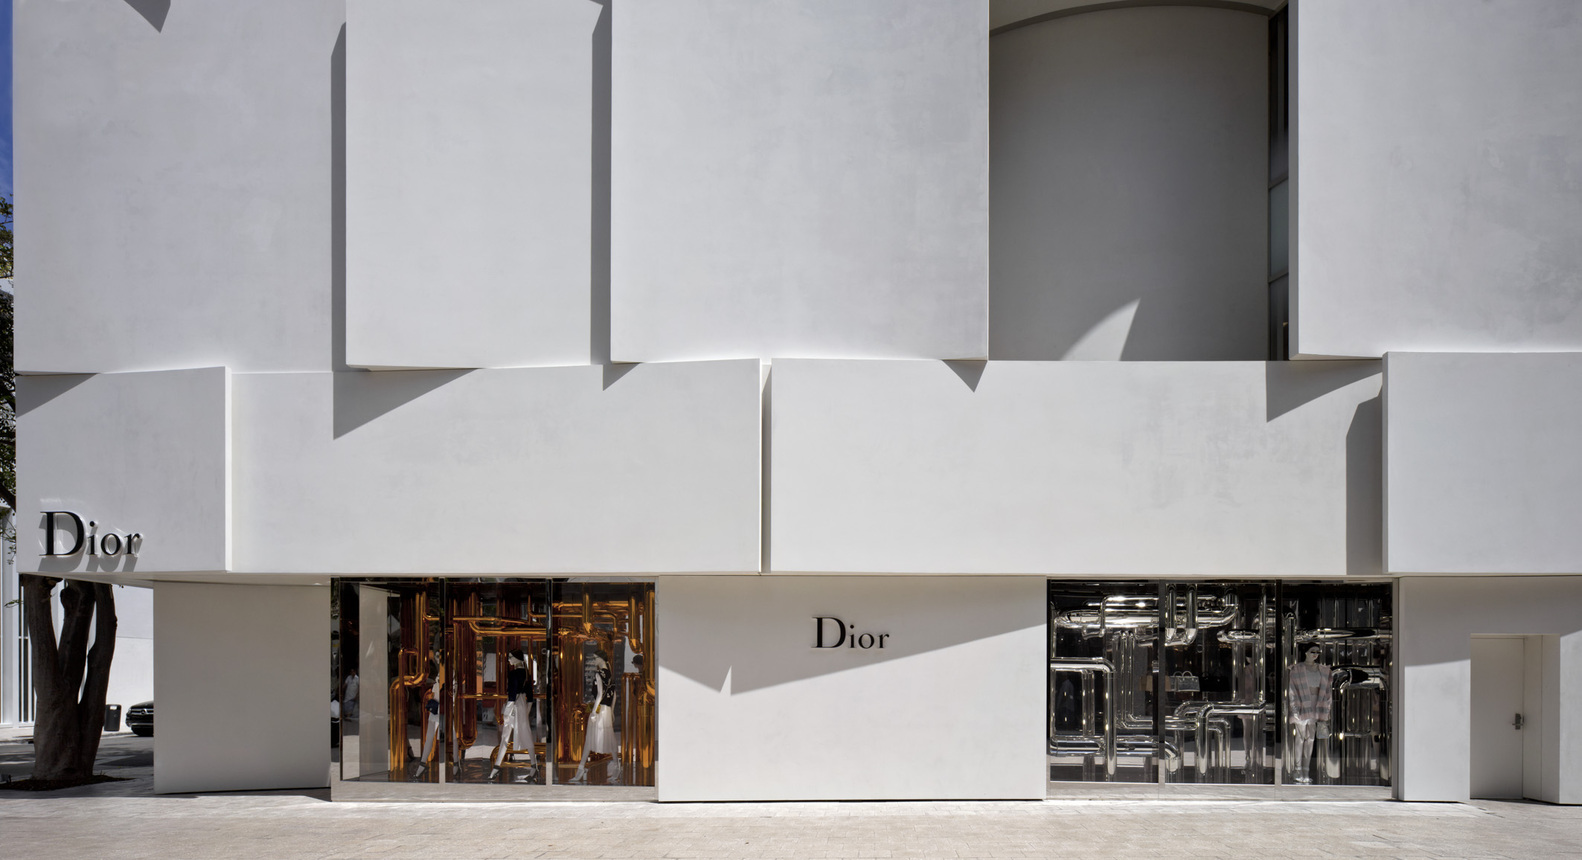 Gallery of Dior Miami Facade   Barbaritobancel Architectes - 2 c06155ce139c